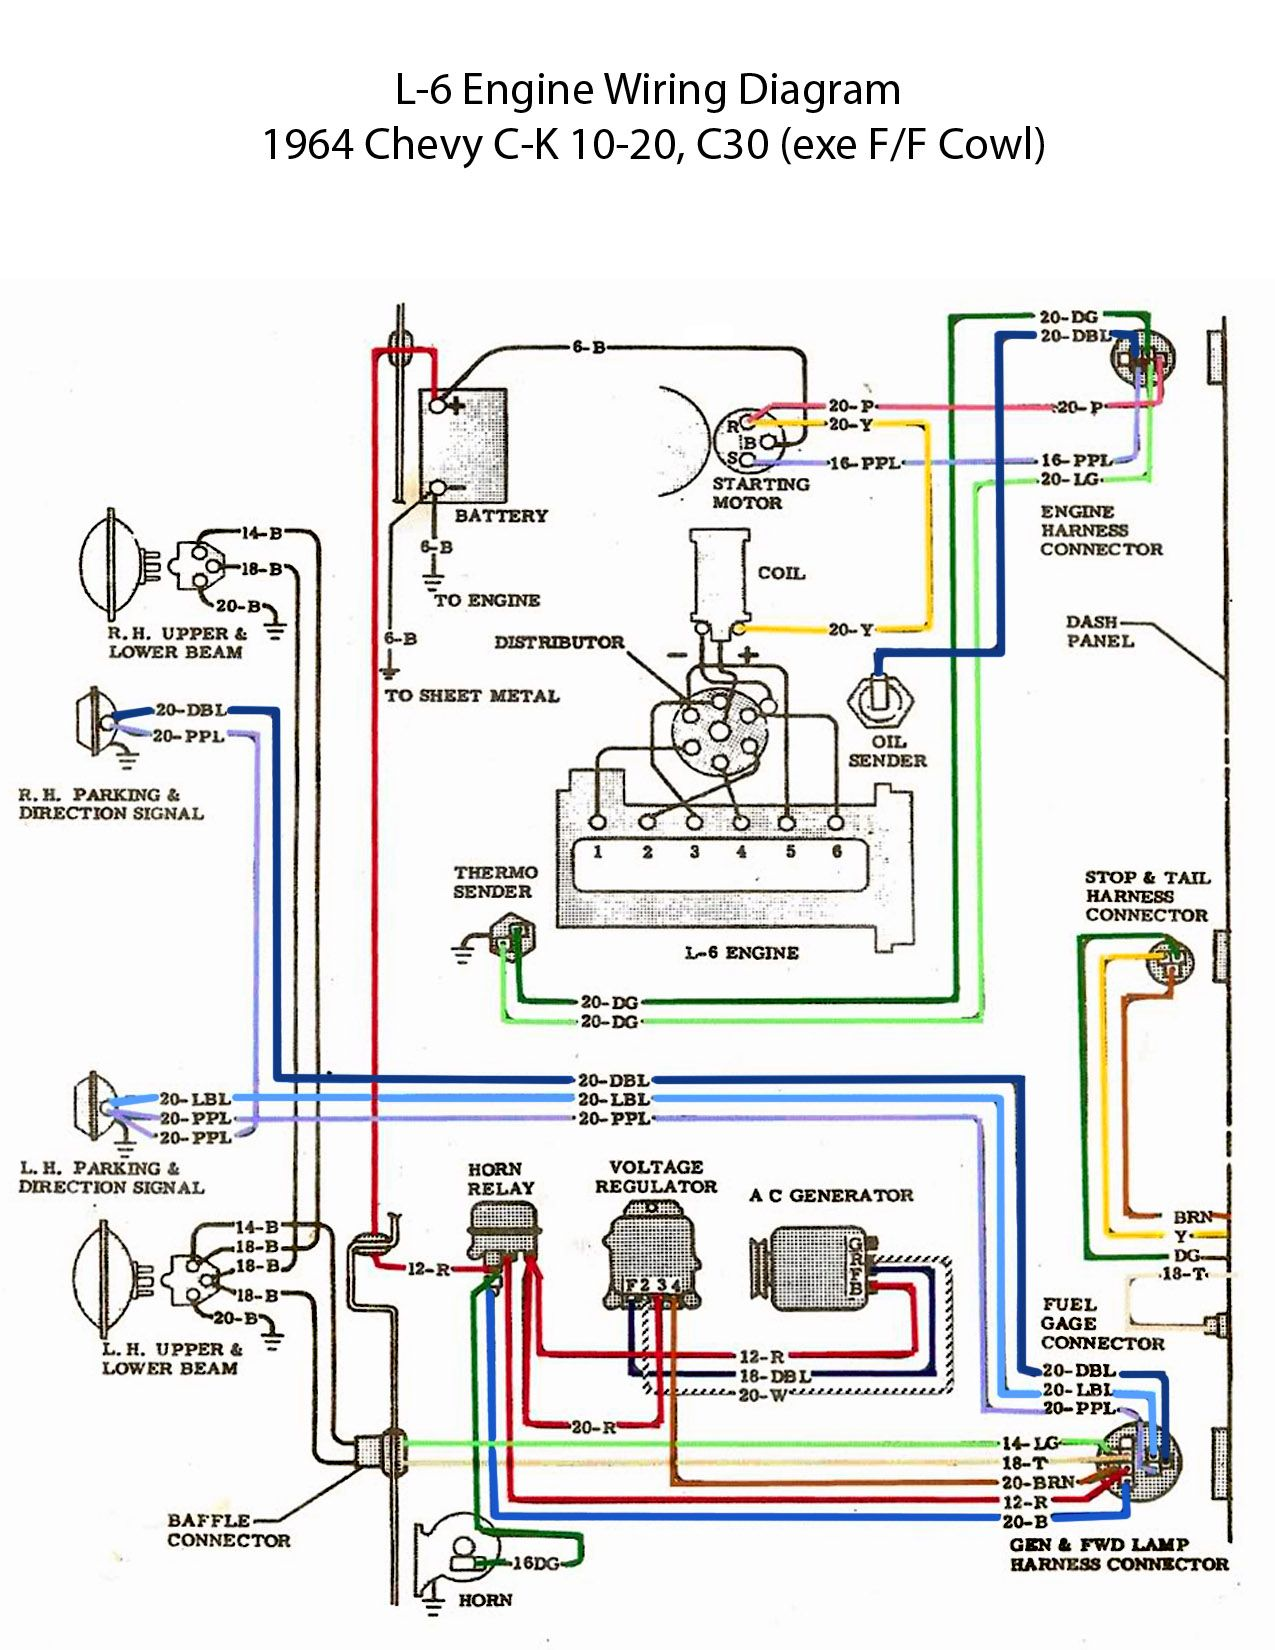 gm alt wiring diagram 1989 3 wire alternator diagram gm alternator rh banyan palace com chevy [ 1275 x 1650 Pixel ]